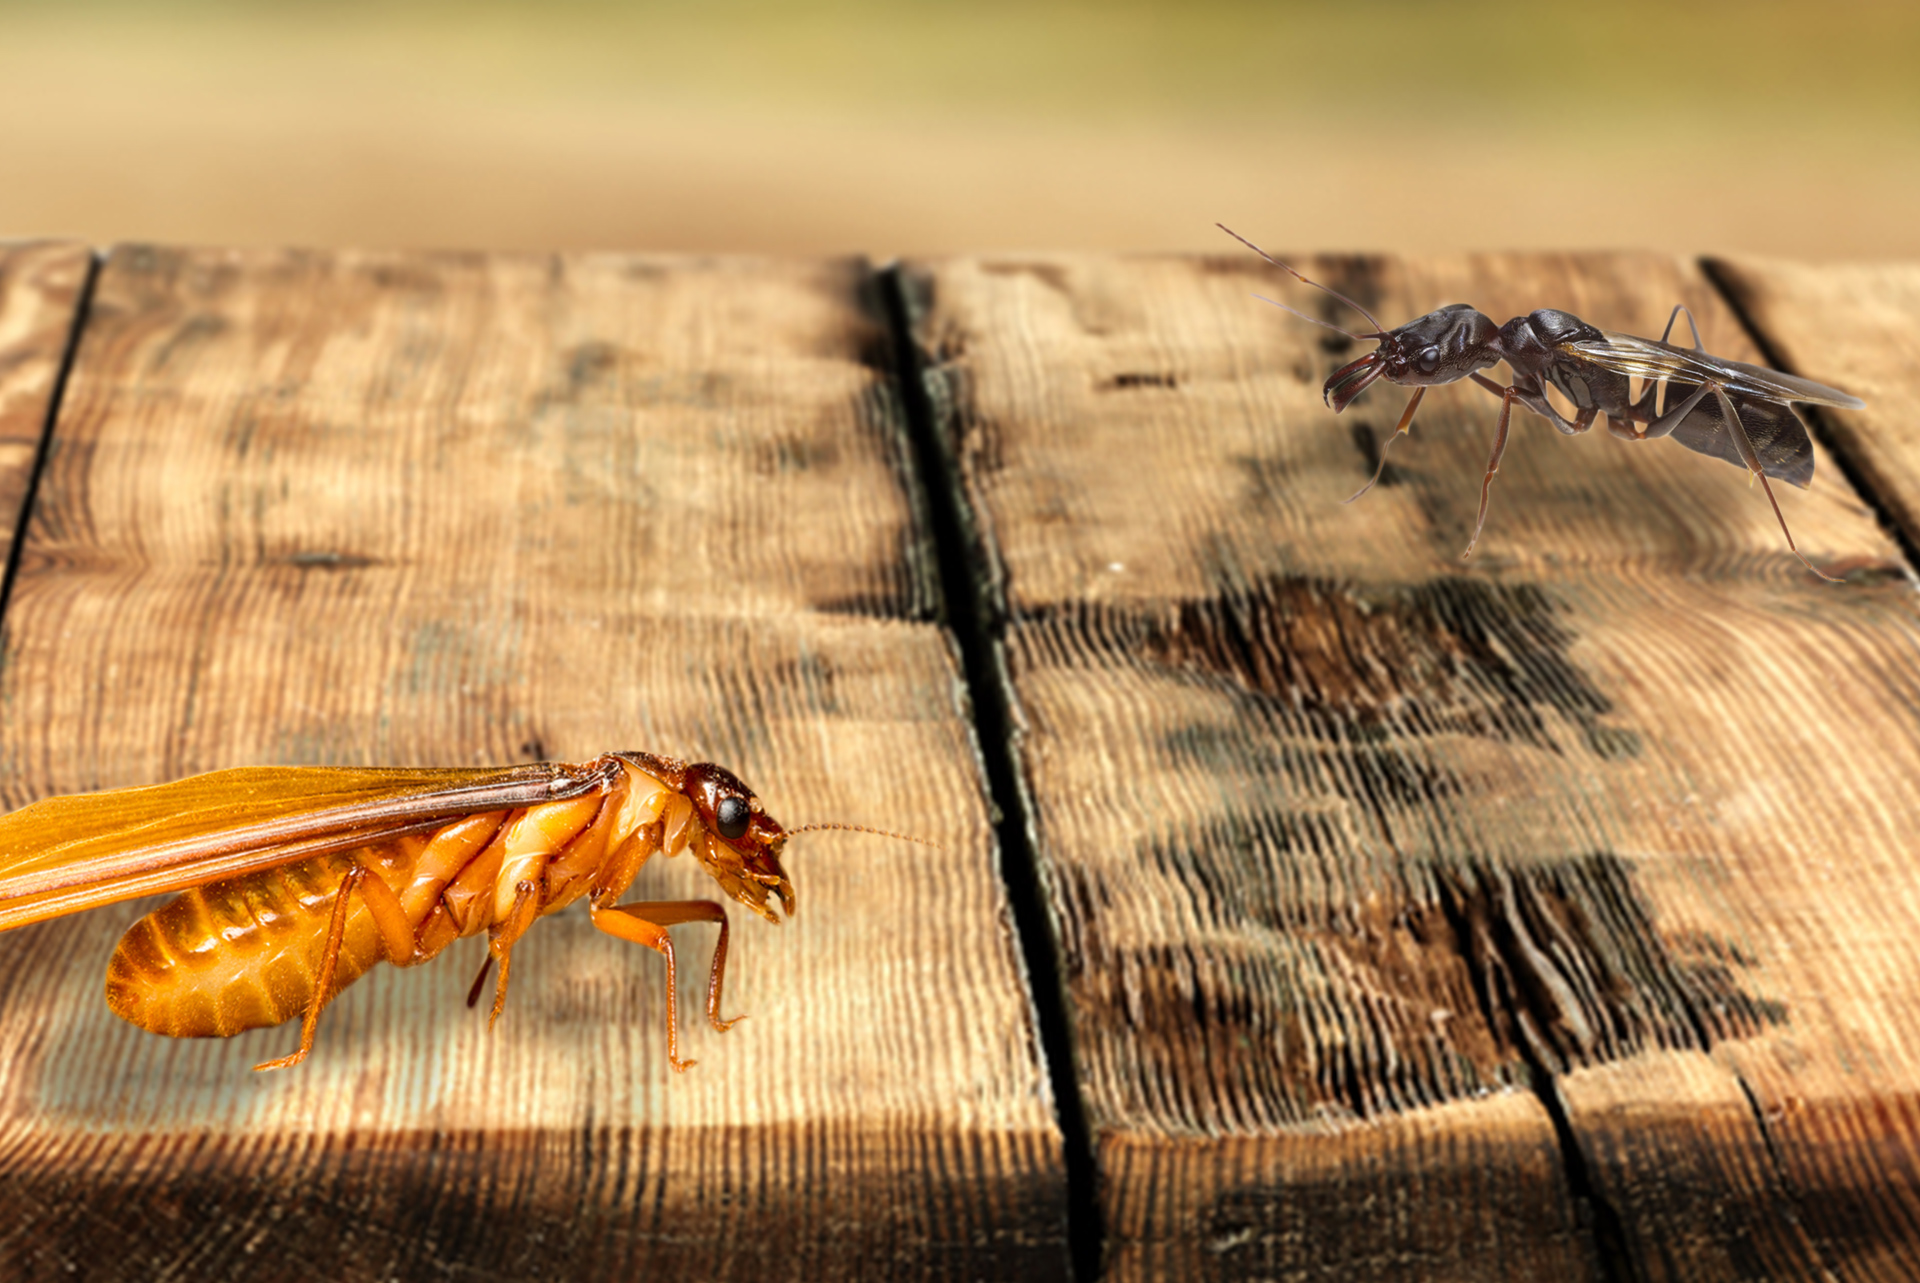 Not Your Usual Suspects – Termites vs. Flying Ants